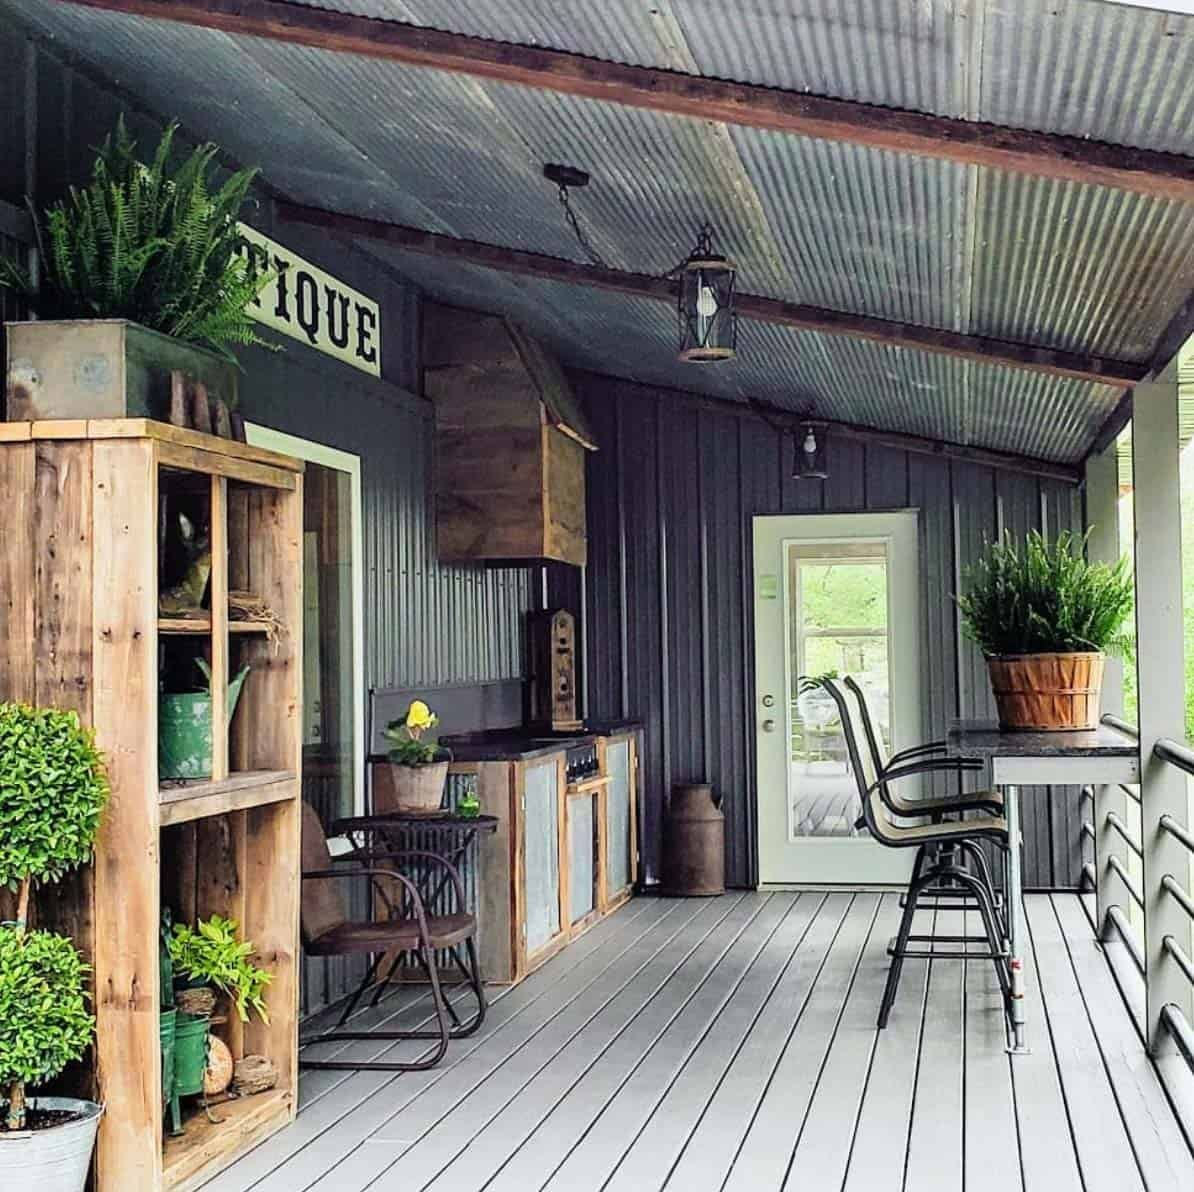 30 Gorgeous And Inviting Farmhouse Style Porch Decorating Ideas Porch Decorating Porch Design House With Porch